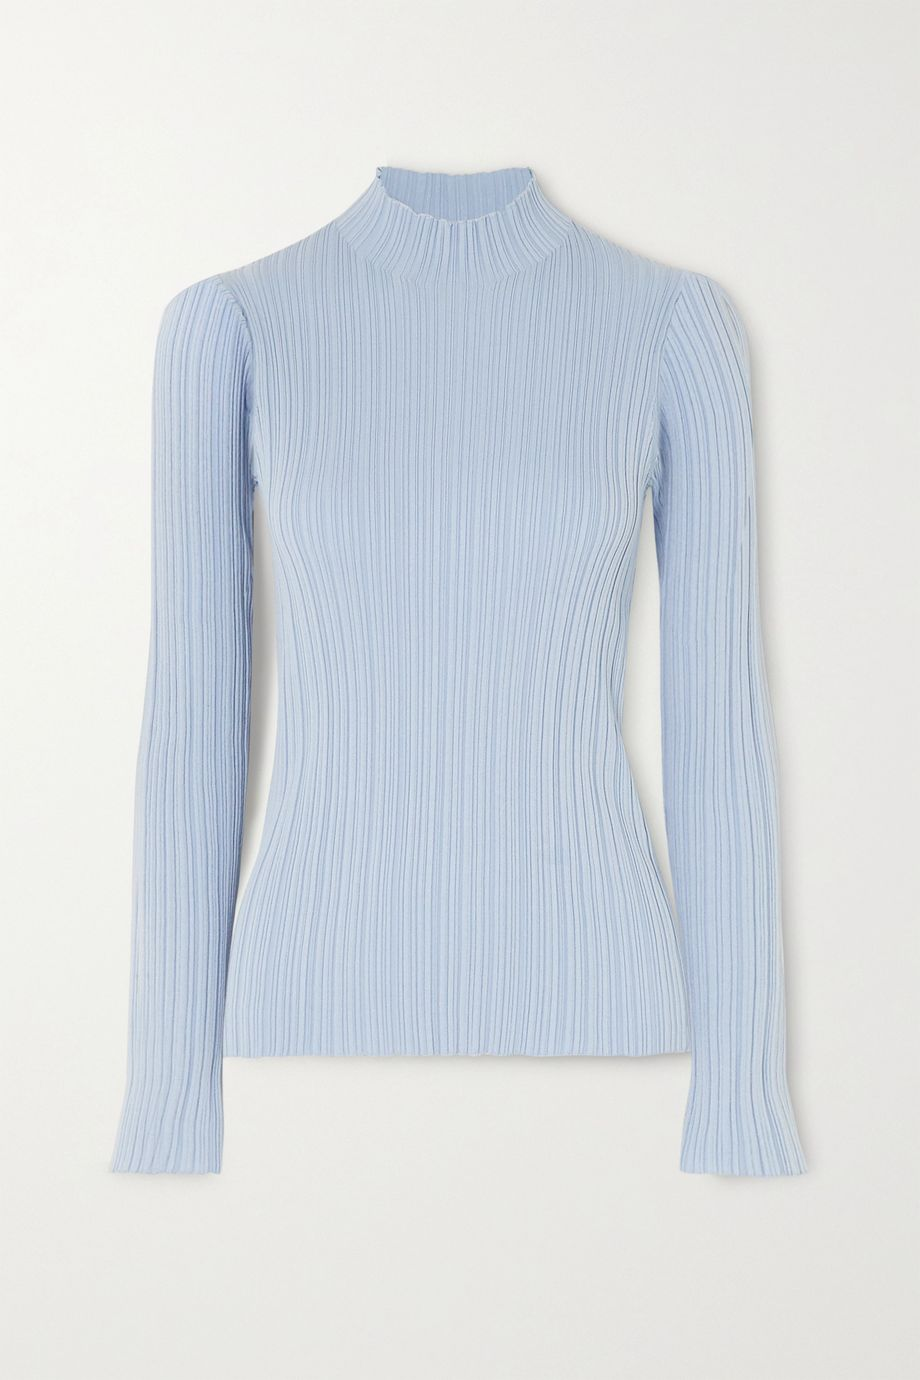 Acne Studios Ribbed cotton-blend sweater